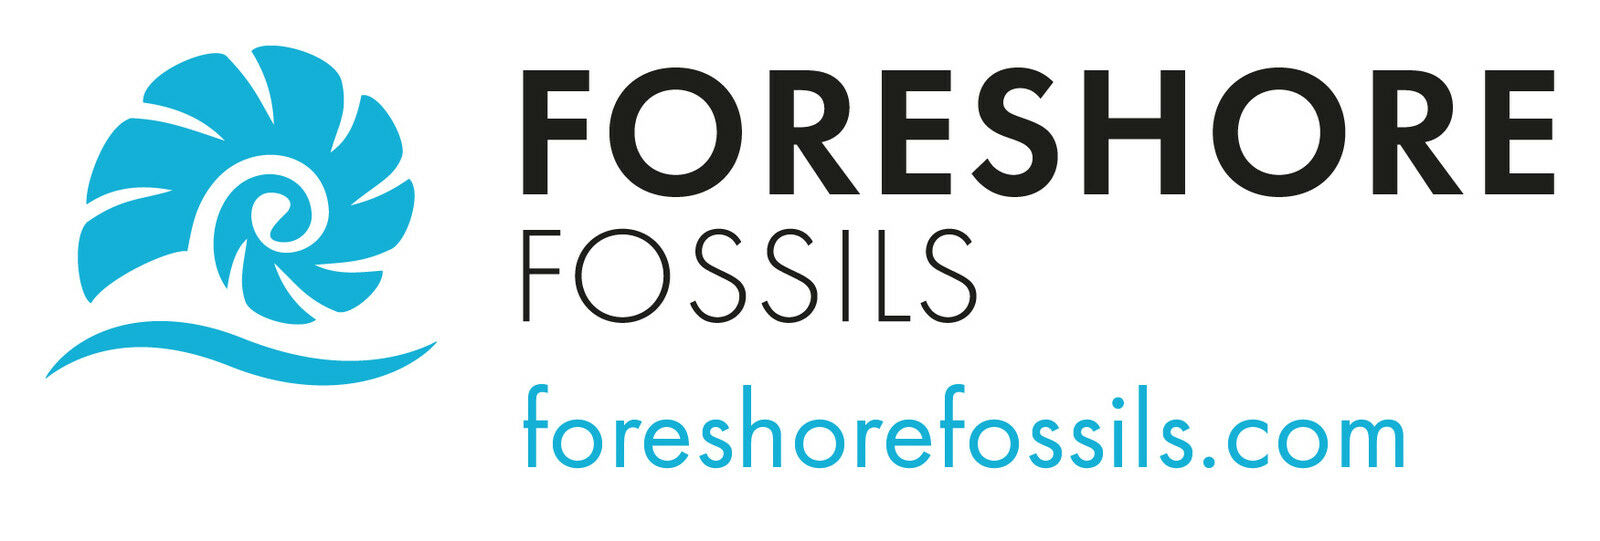 Foreshore Fossils